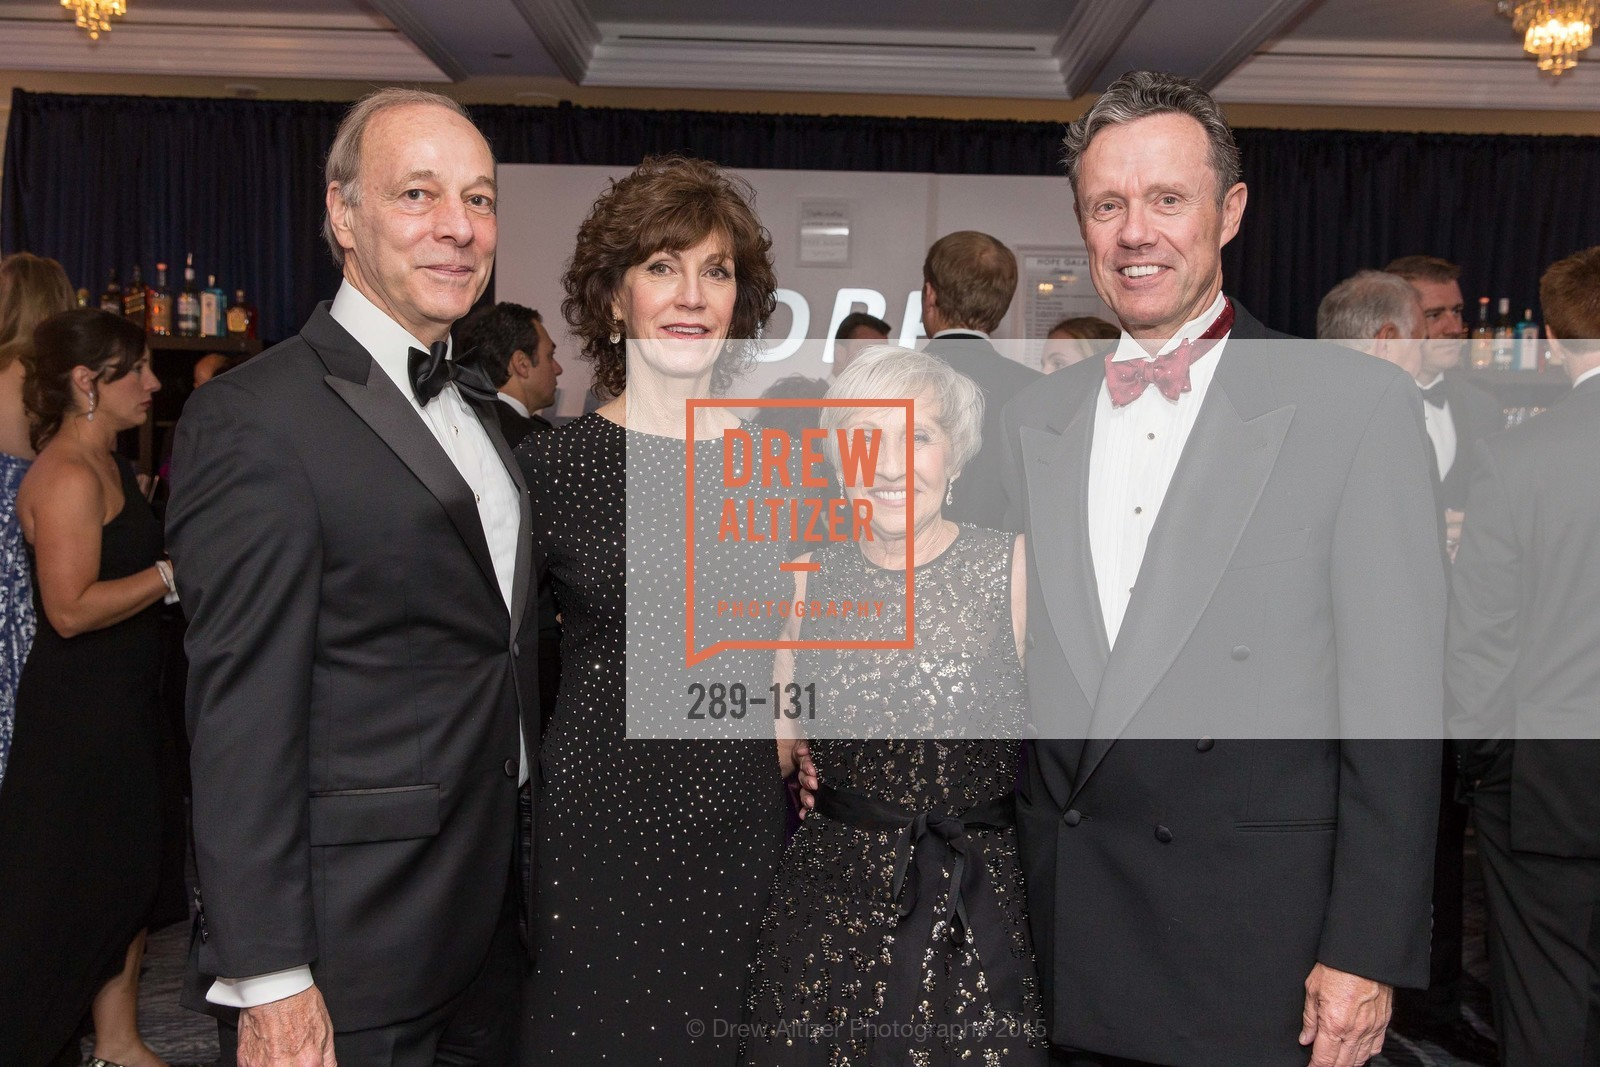 Timothy Connor, Lee Connor, Pam Sagan, Bill Sagan, JUVENILE DIABETES RESEARCH FOUNDATION  Hope Gala, The Ritz-Carlton, May 29th, 2015,Drew Altizer, Drew Altizer Photography, full-service agency, private events, San Francisco photographer, photographer california